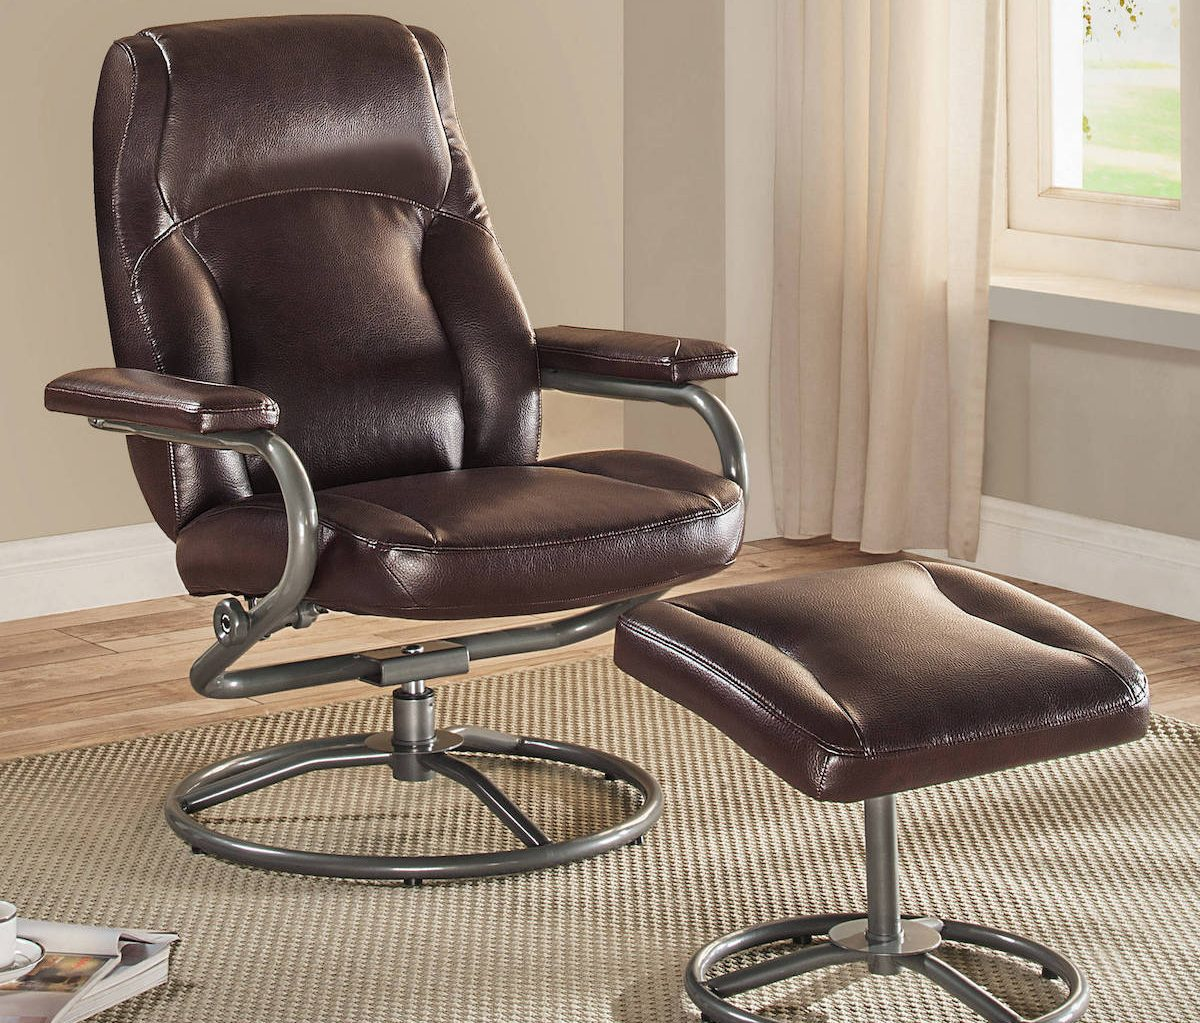 Mainstays recliner and ottoman